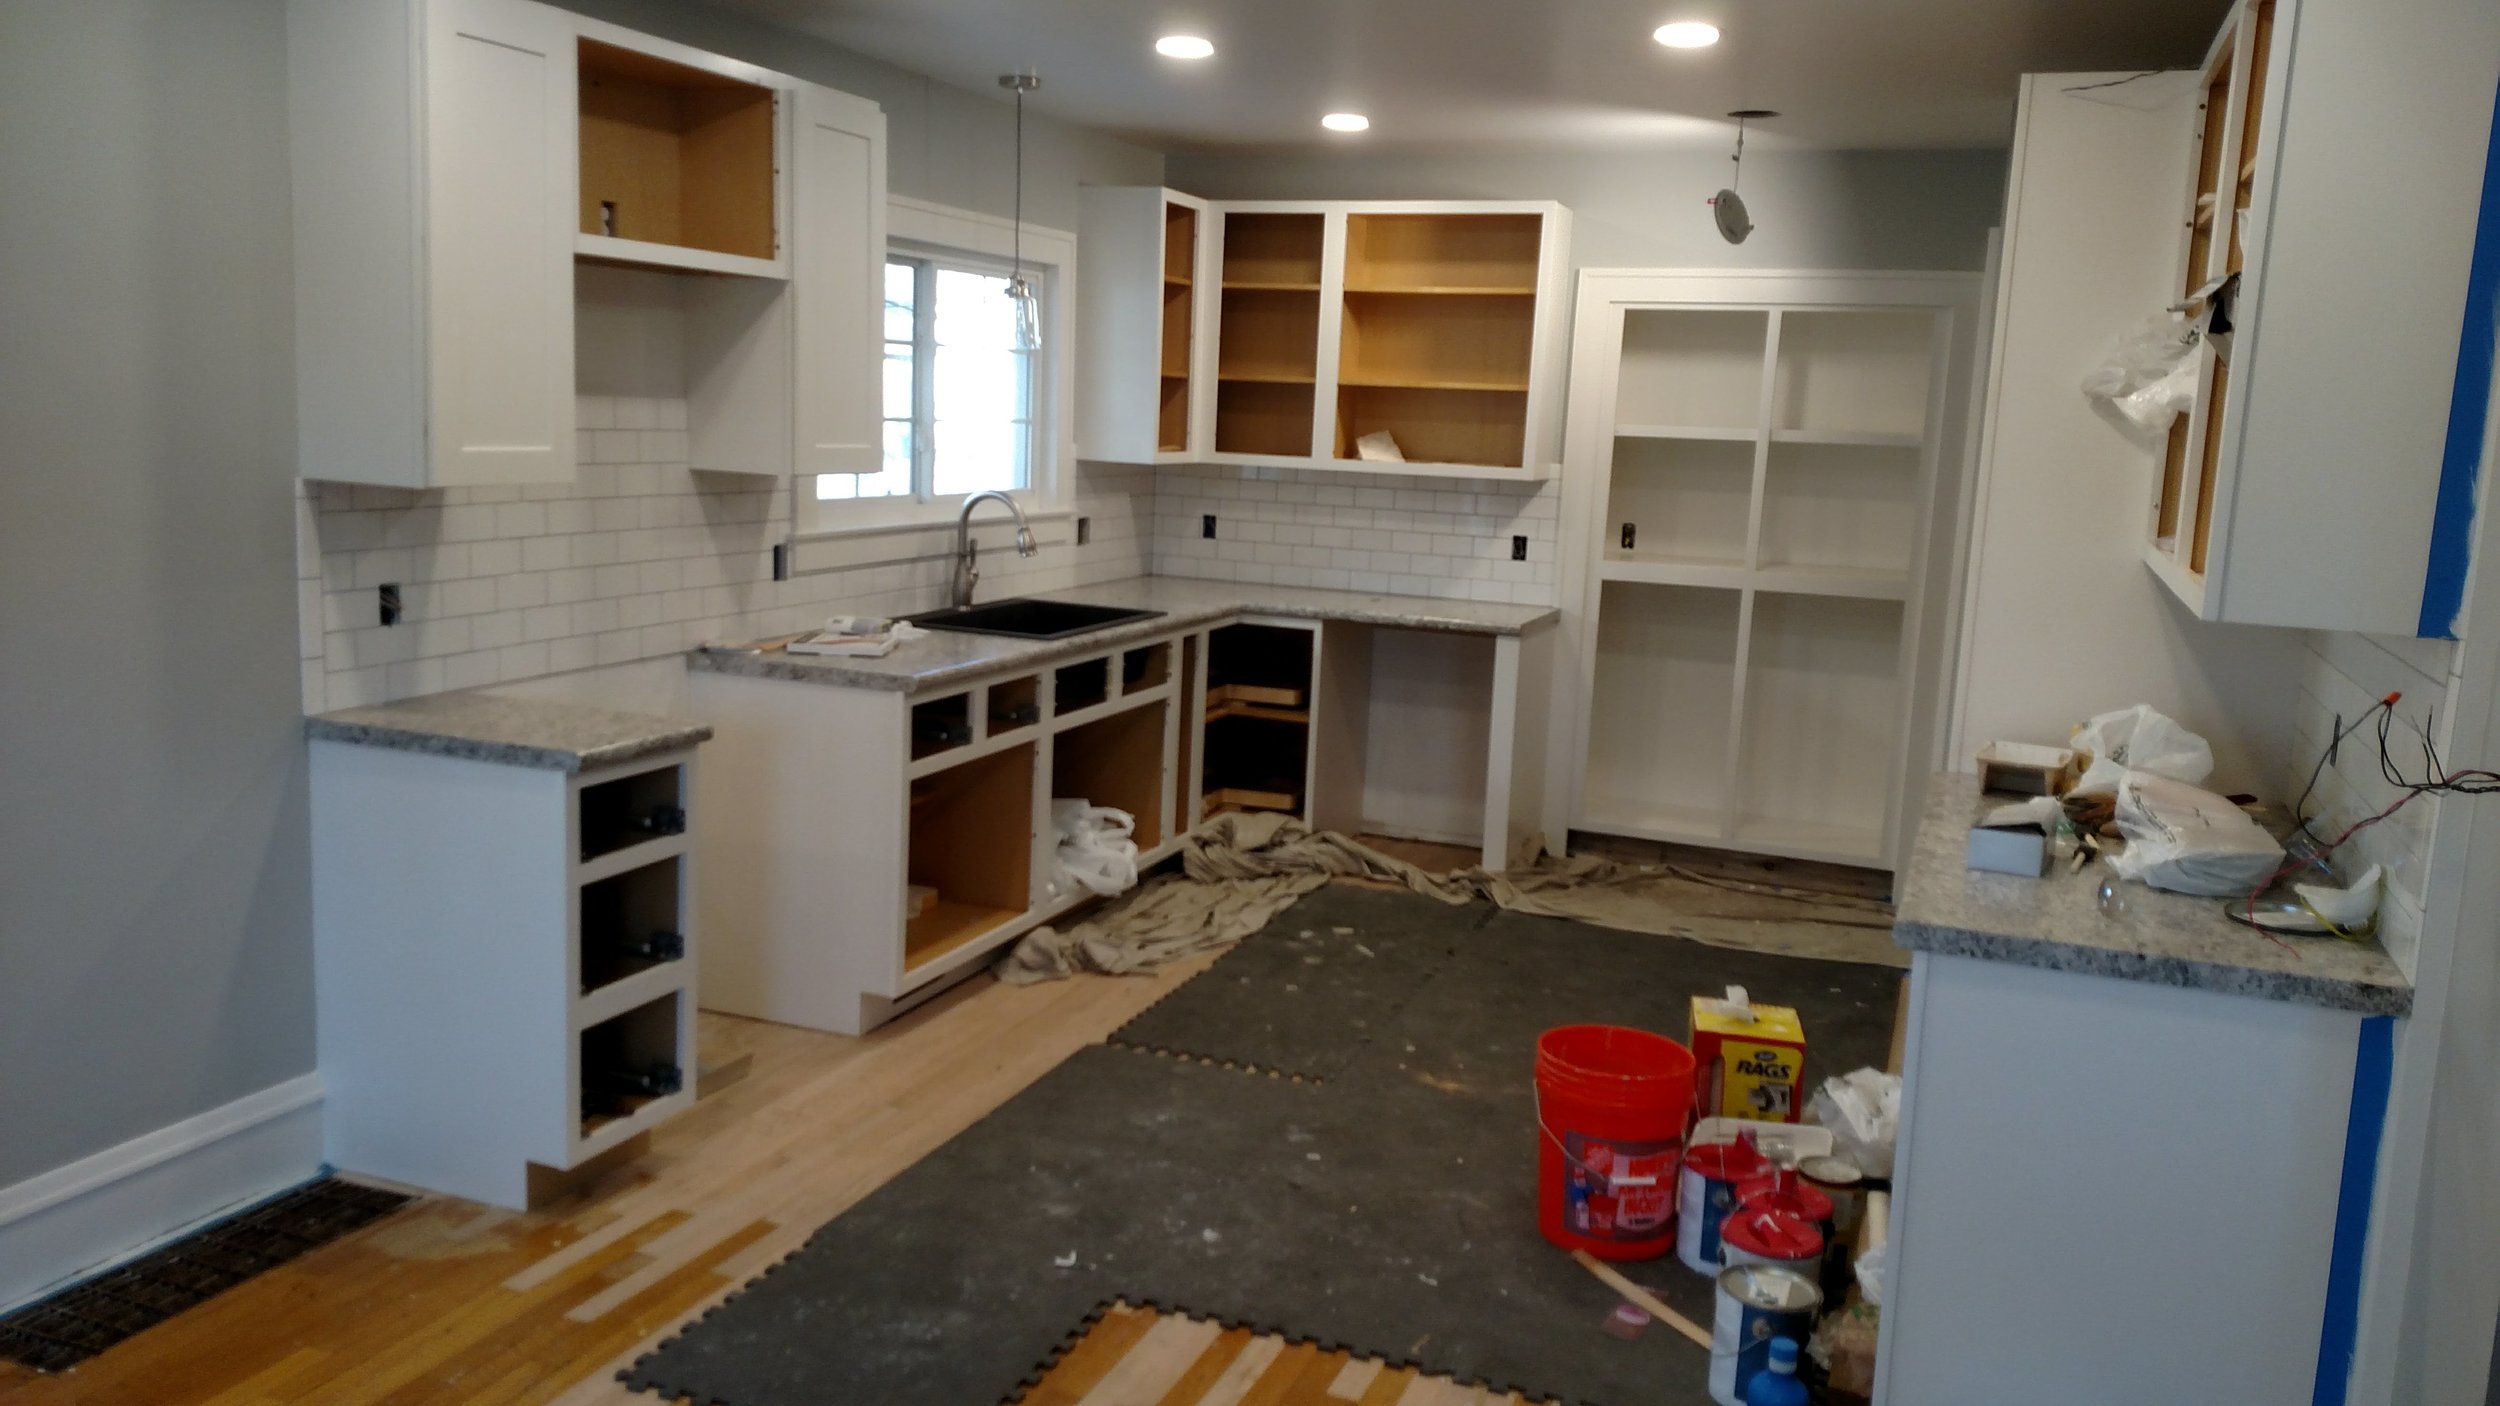 KITCHEN BEFORE STEP 6